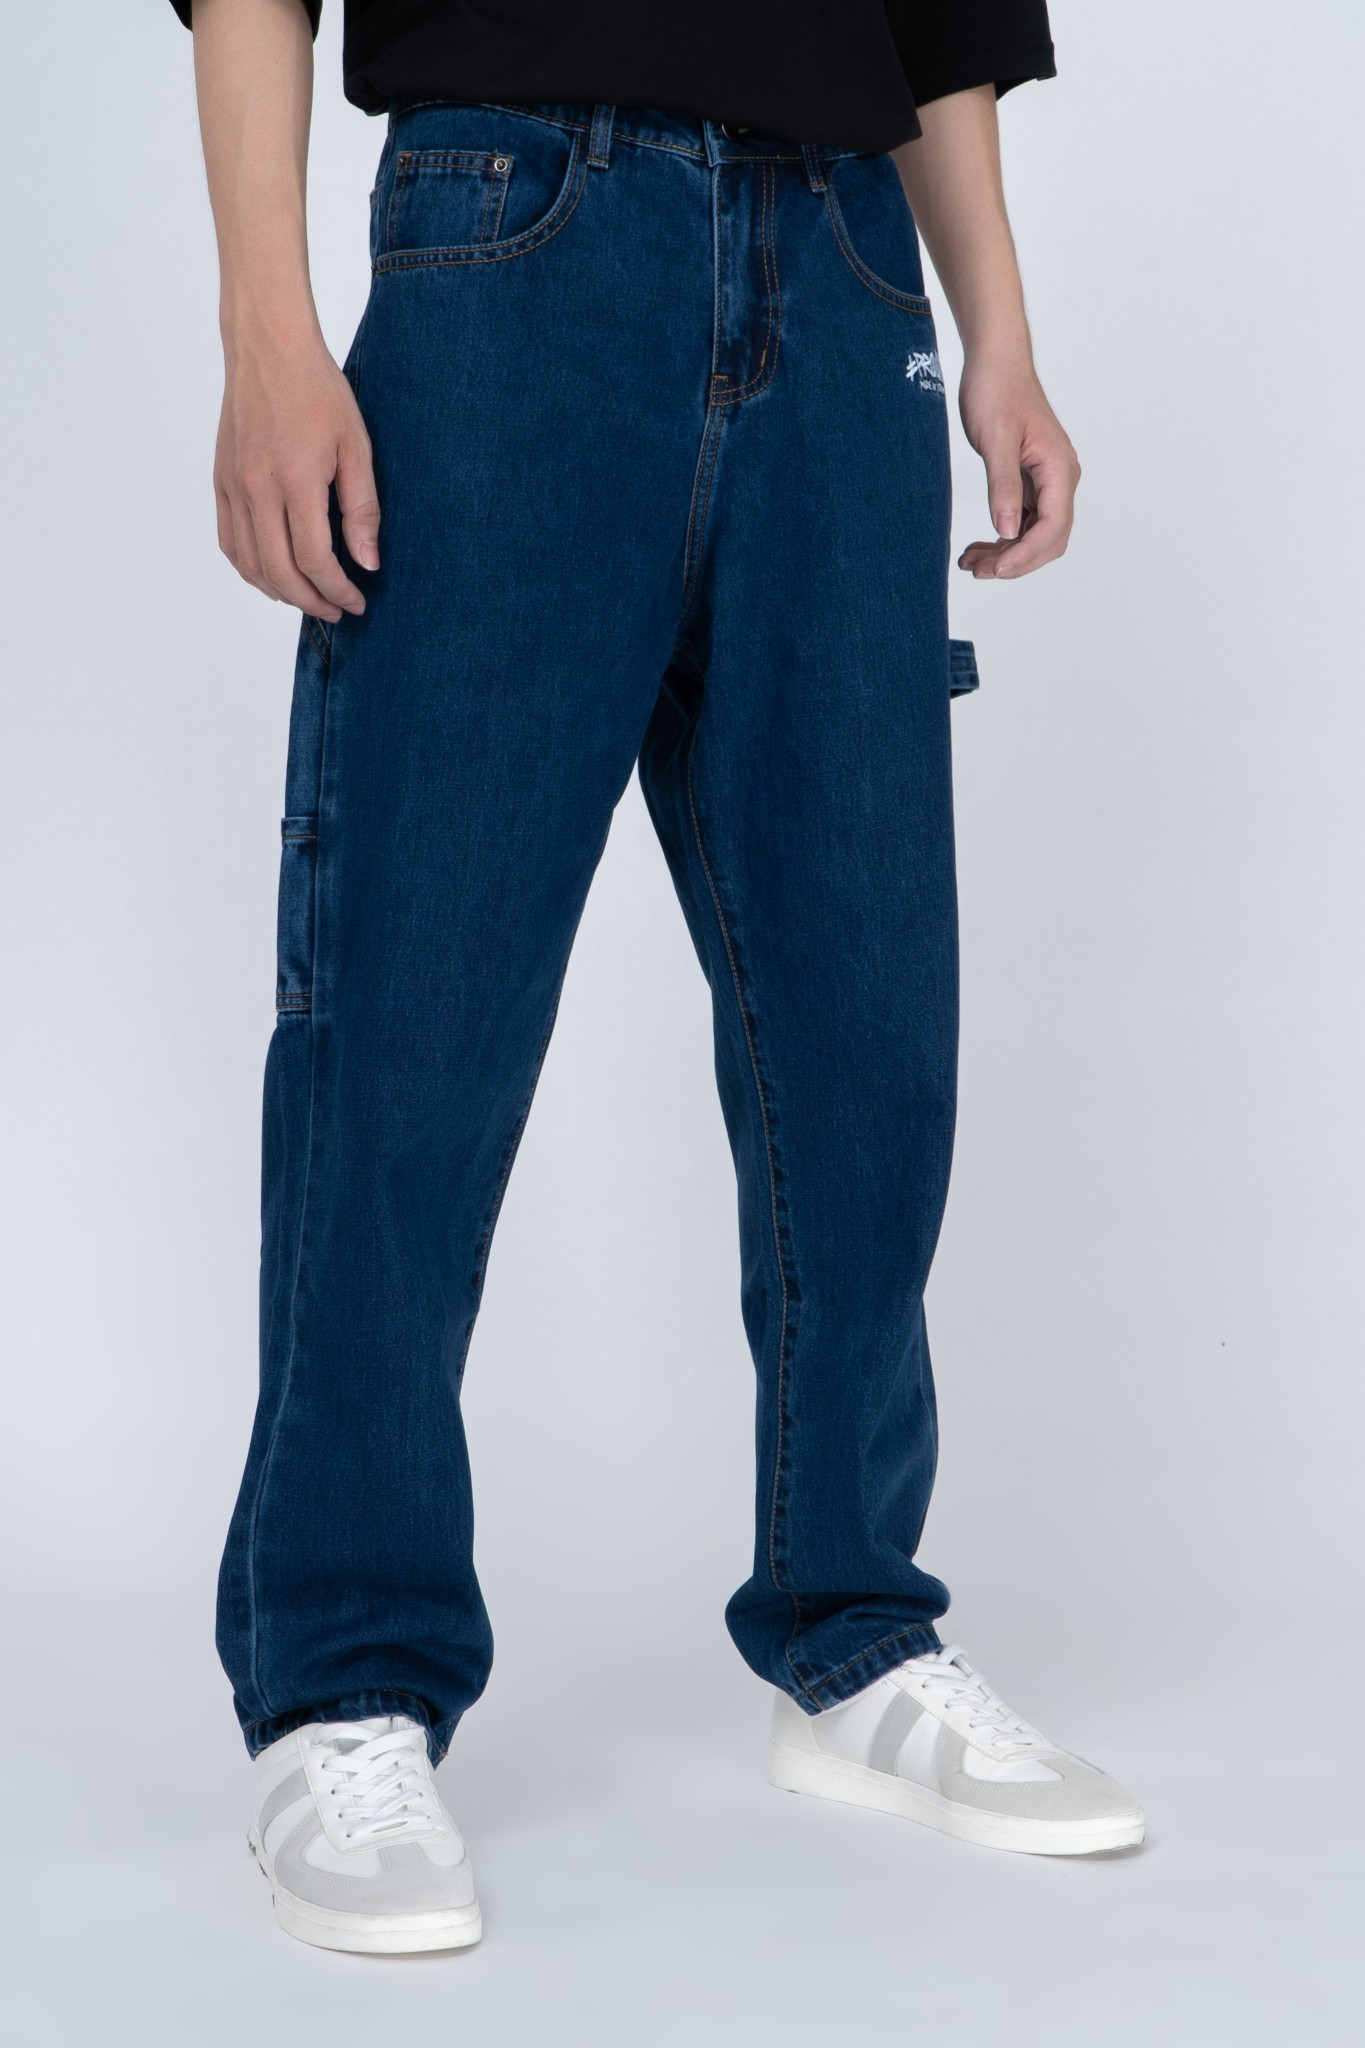 QUẦN JEANS NAM STRAIGHT #PROUDLY